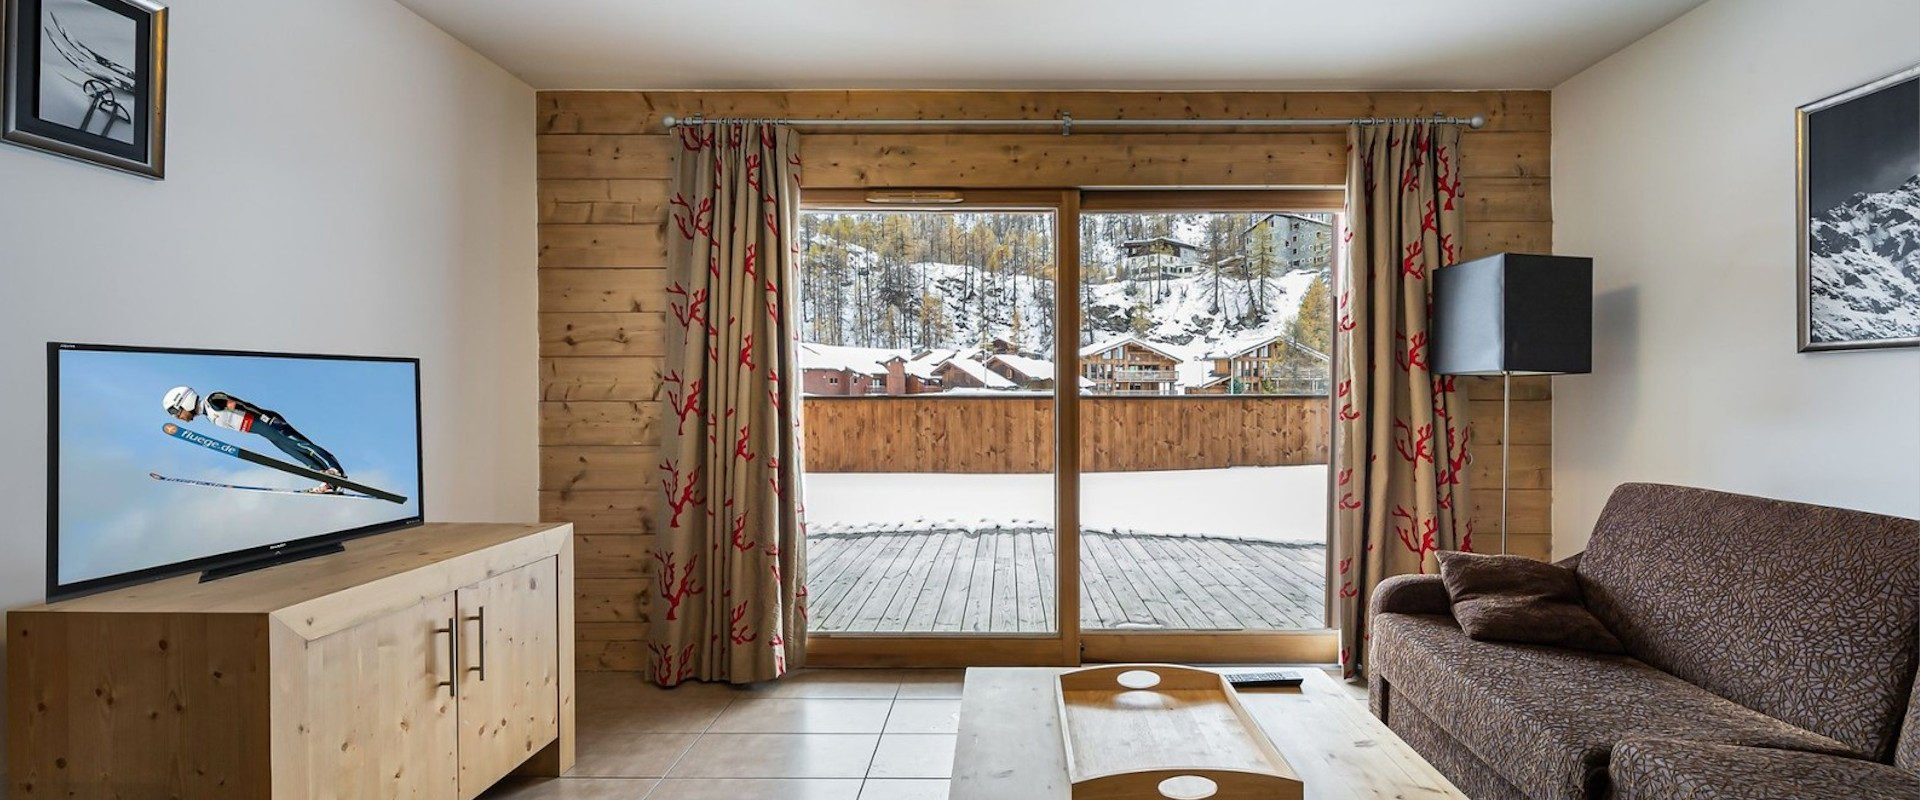 3 Bedroom Tignes Apartment For Sale, France • Alpine ...